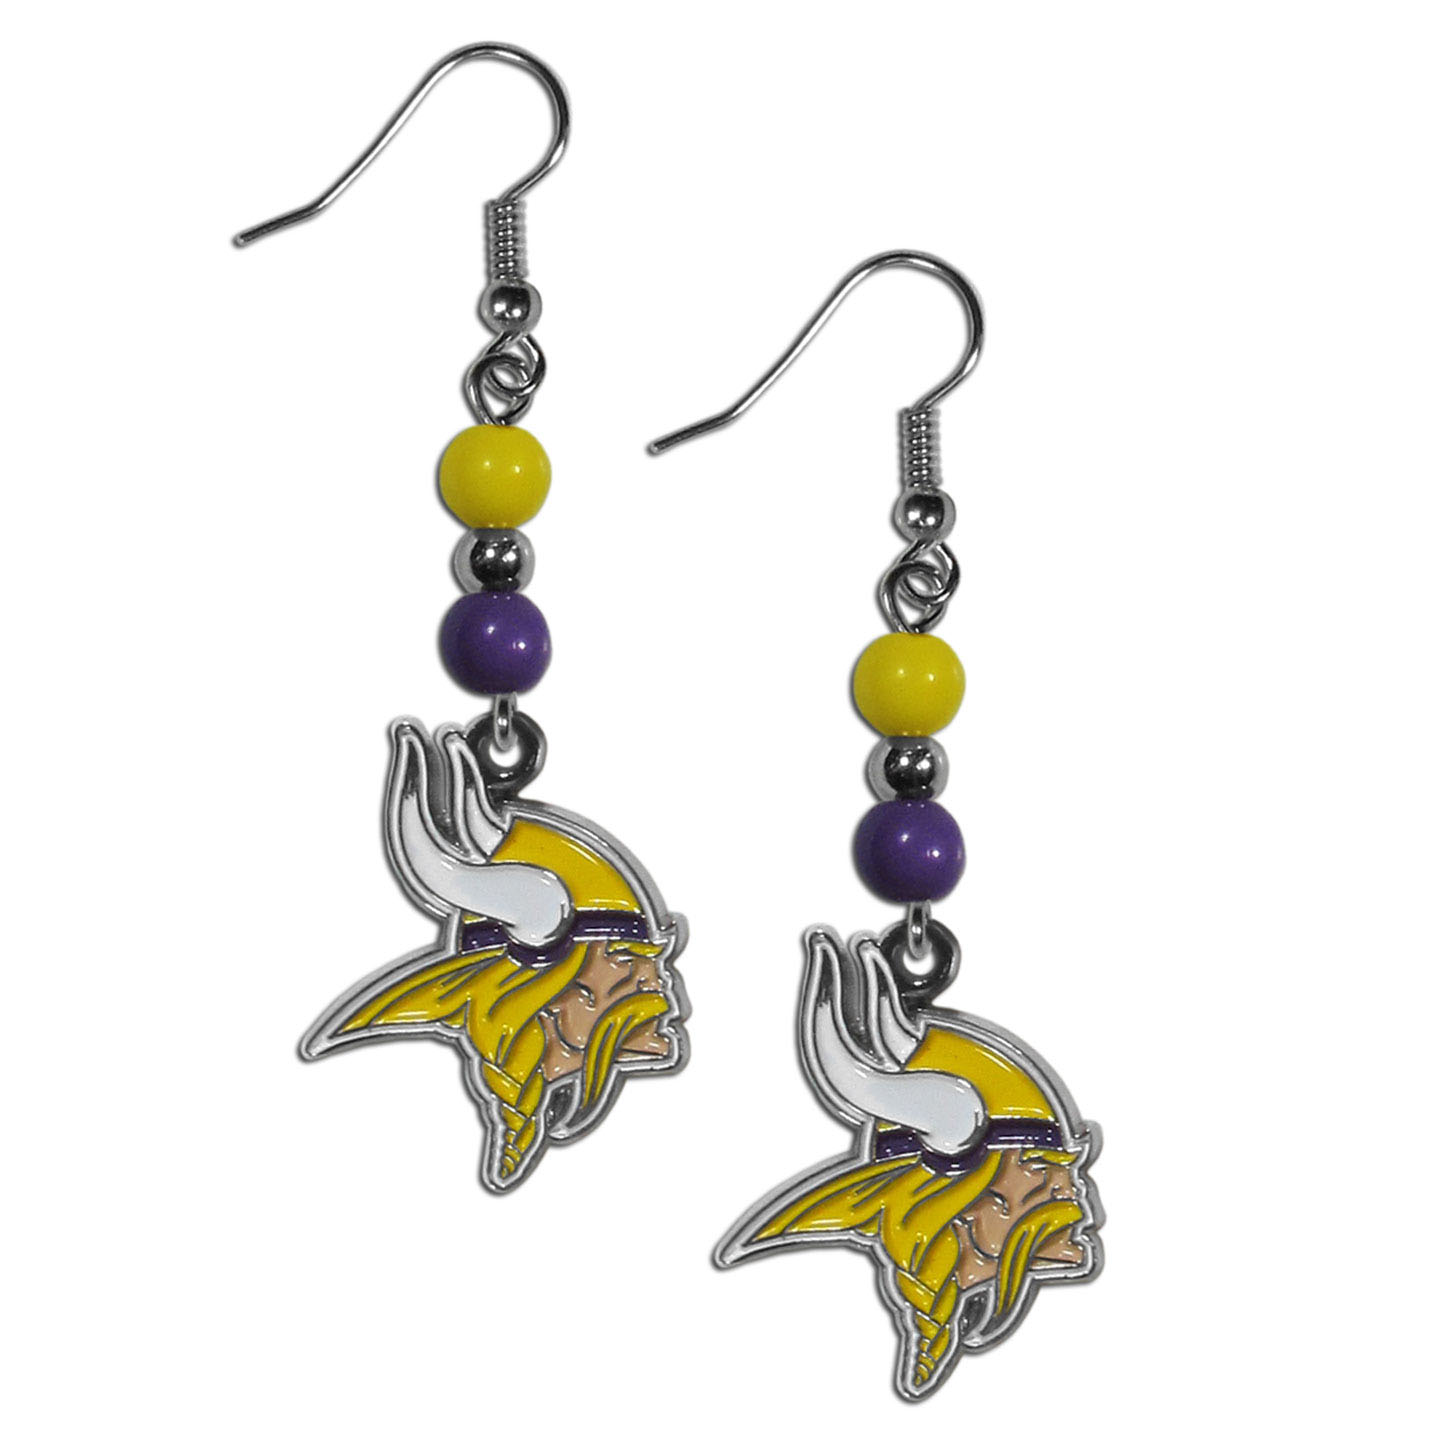 Minnesota Vikings Fan Bead Dangle Earrings - Love your team, show it off with our Minnesota Vikings bead dangle earrings! These super cute earrings hang approximately 2 inches and features 2 team colored beads and a high polish team charm. A must have for game day!